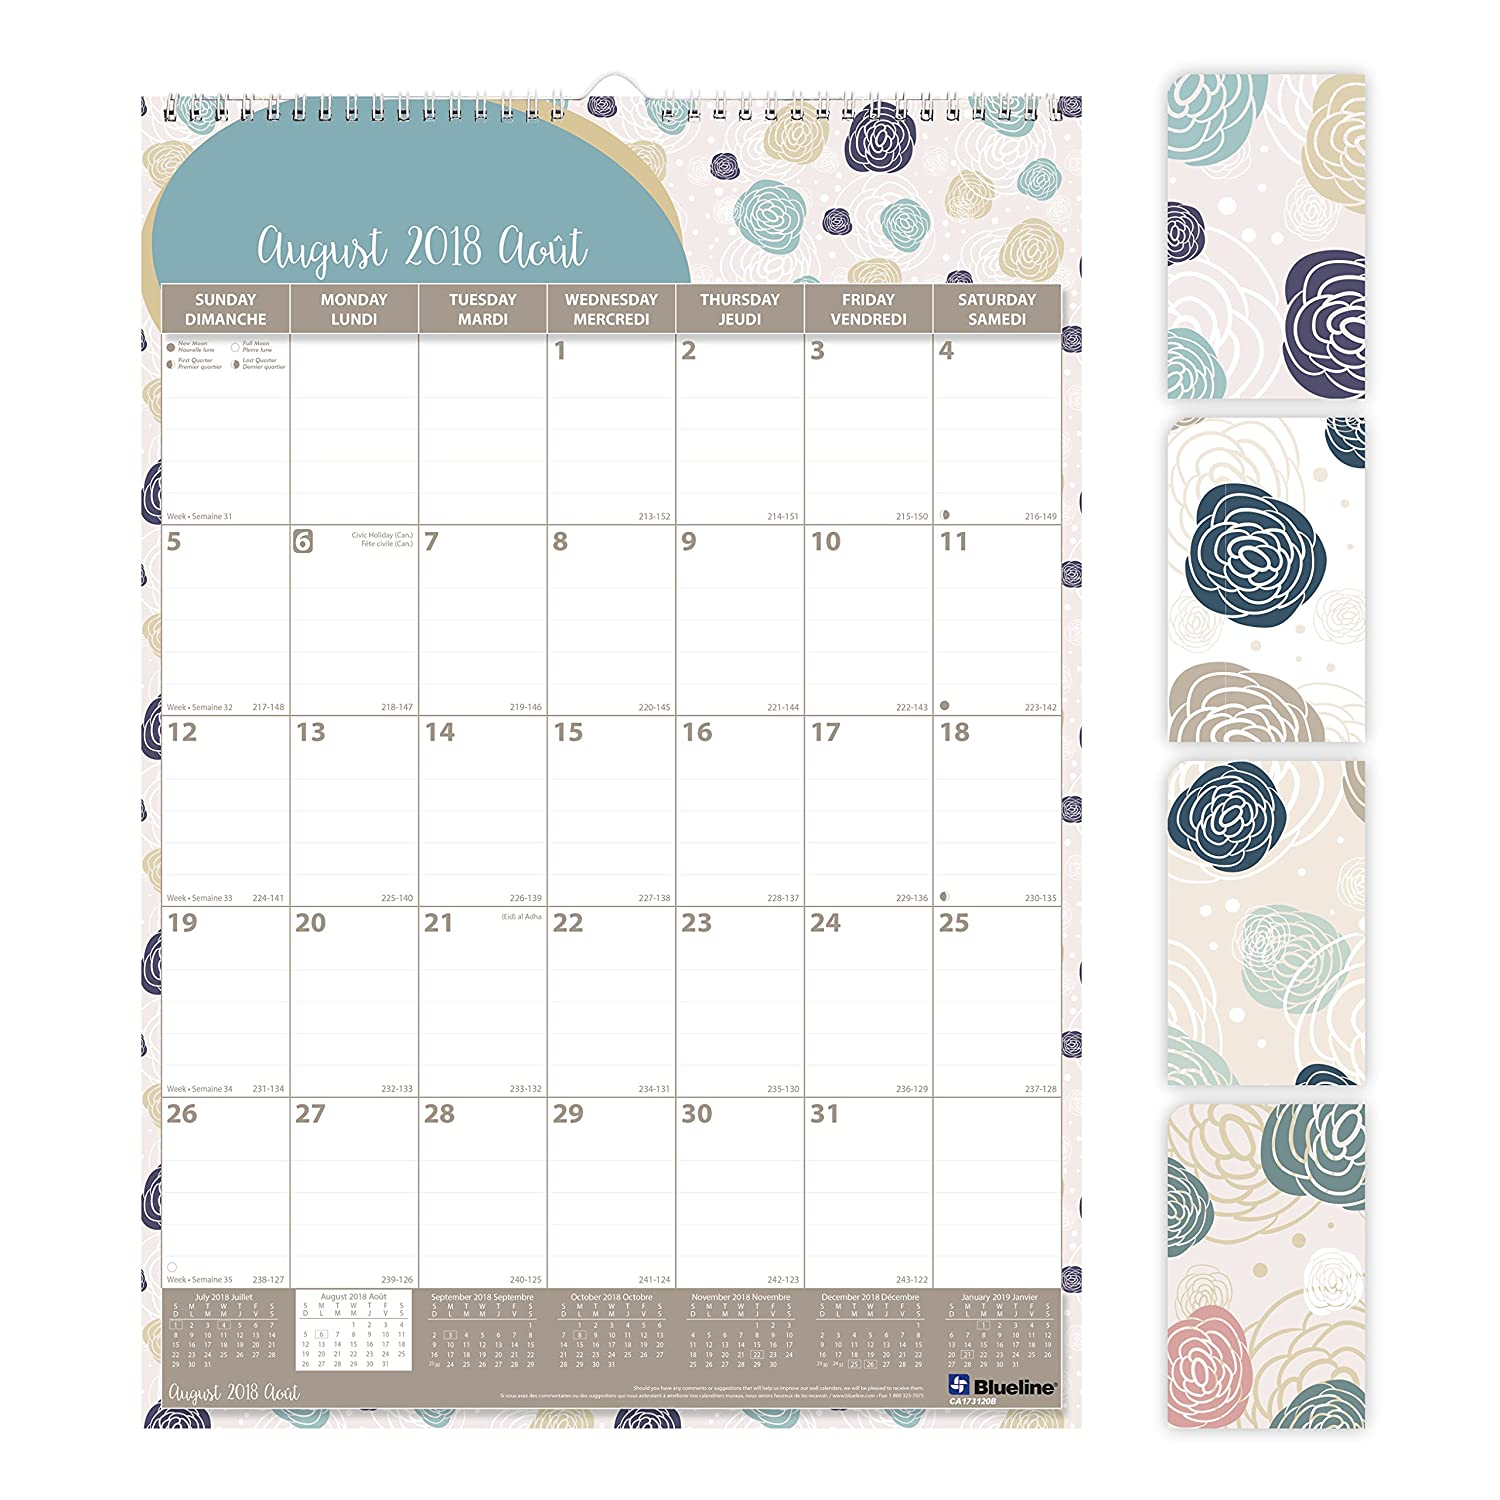 Blueline 2018-2019 Monthly Academic Colourful Wall Calendar with Begonia Design, 12x17, August 2018 to July 2019, Bilingual, (CA173120B-2019) 12x17 Blueline Canada